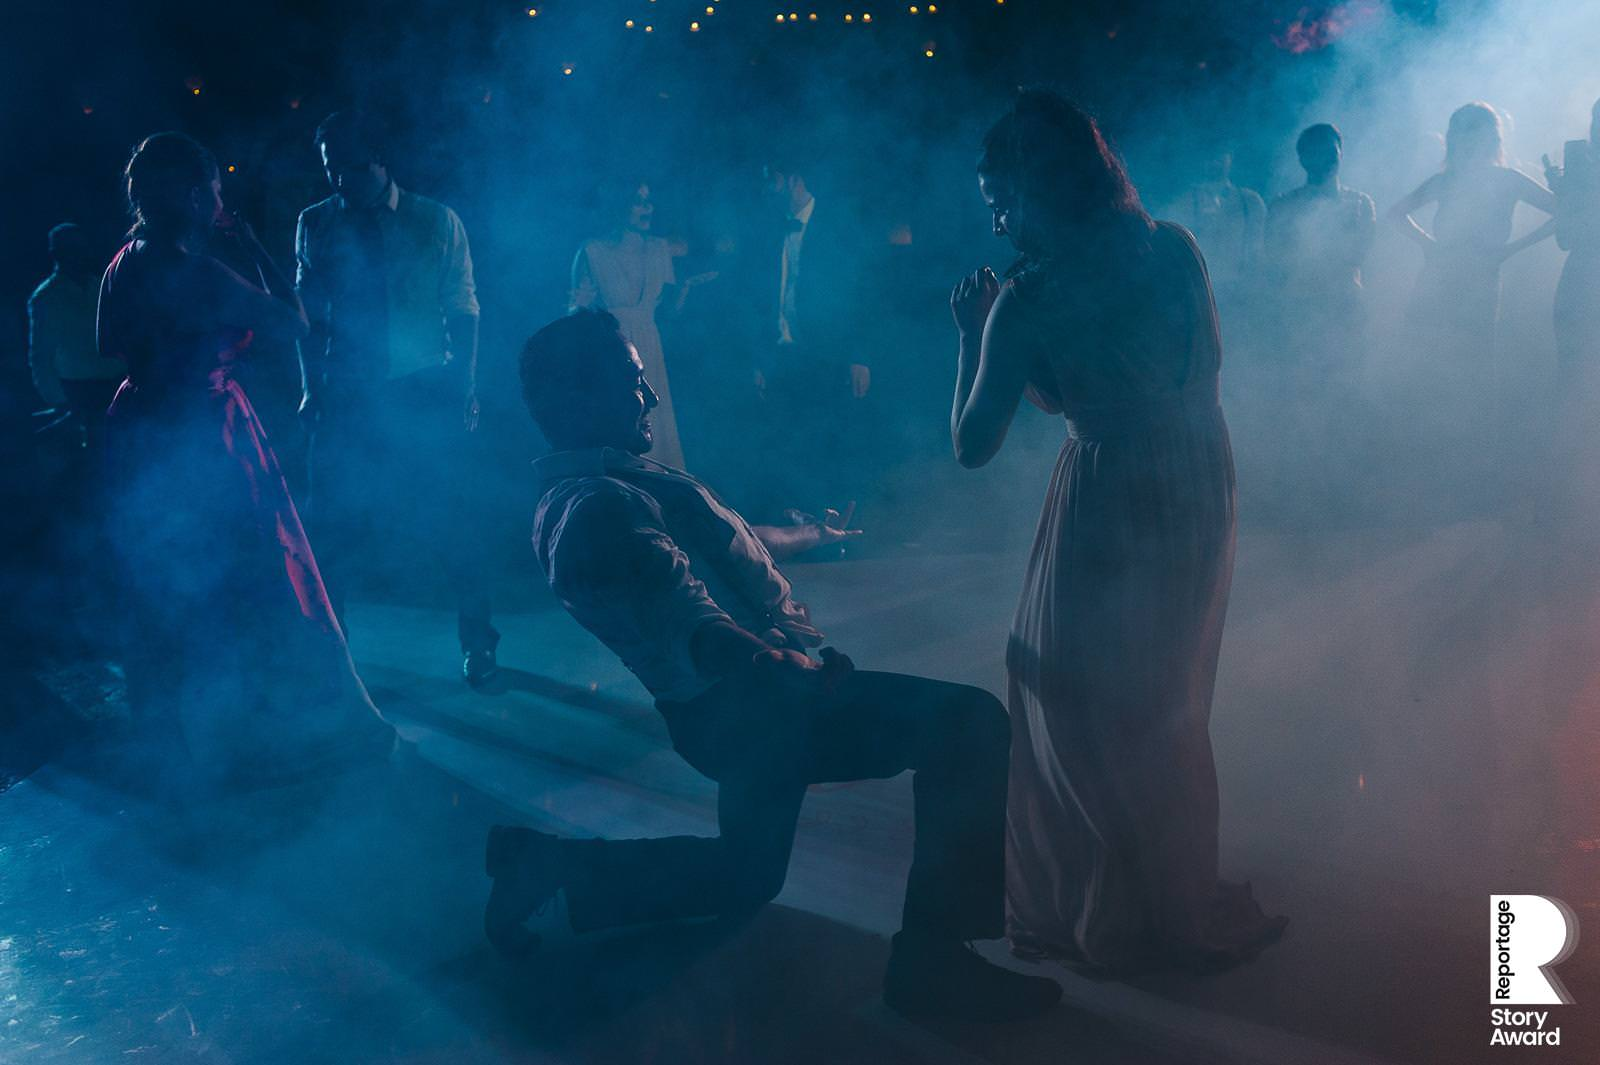 Guests dancing on the dance floor with dreamy blue light at Xcaret wedding reception